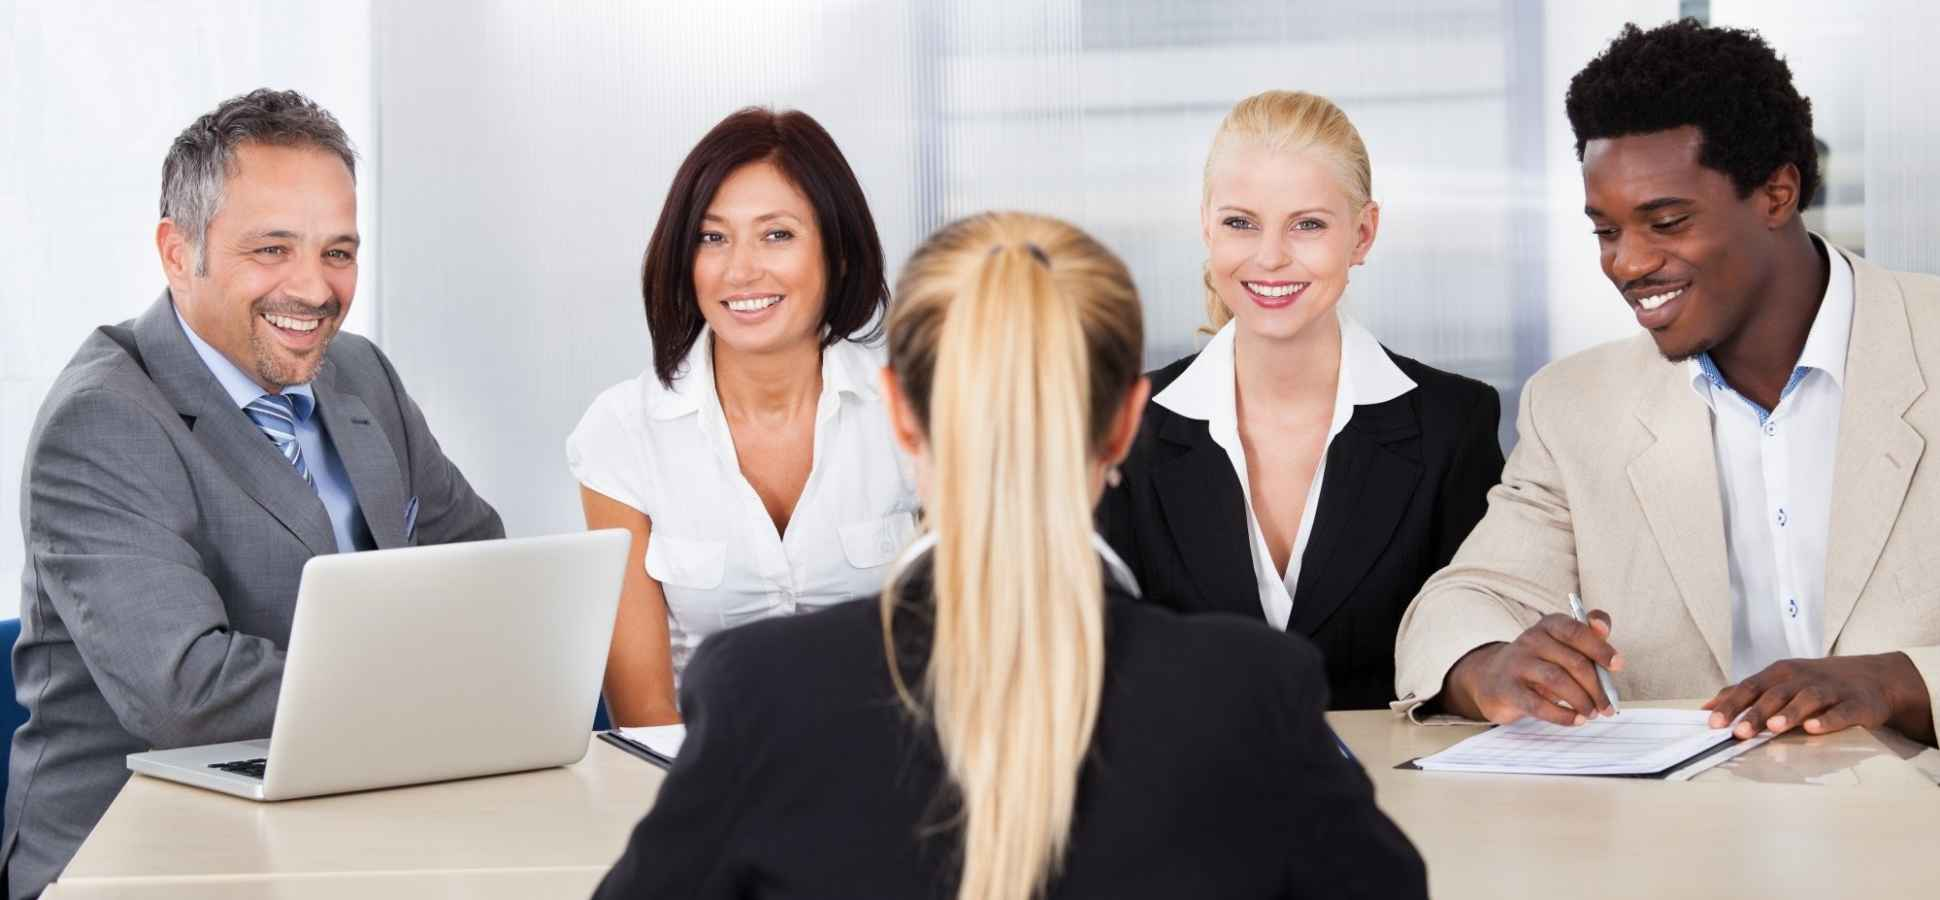 40 Interview Questions That Will Sort the Great from the Good